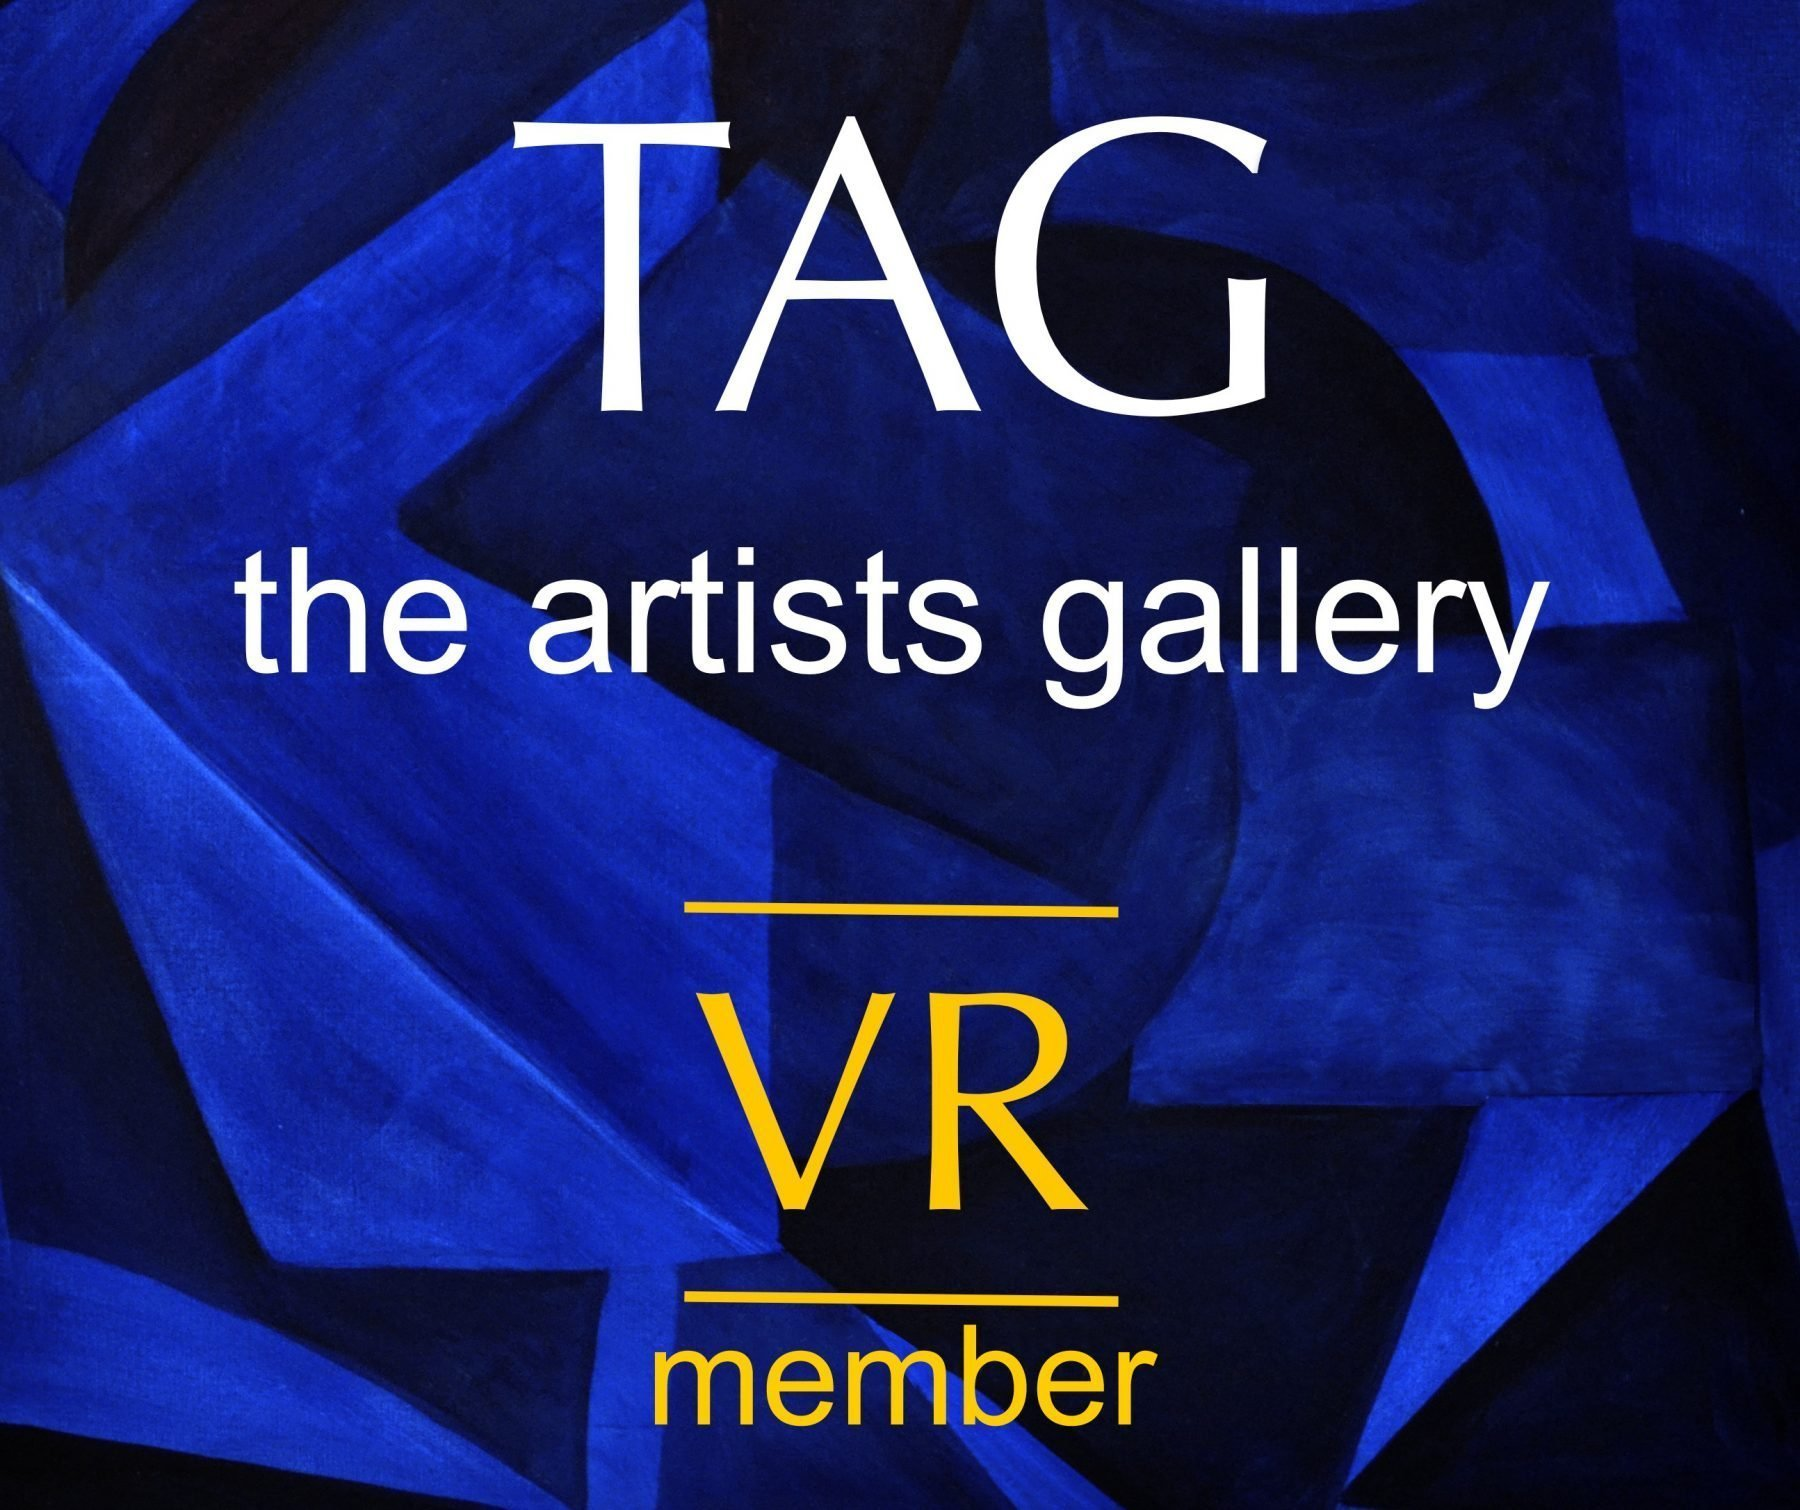 TAG TUBES artists Galleries VR MEMBER